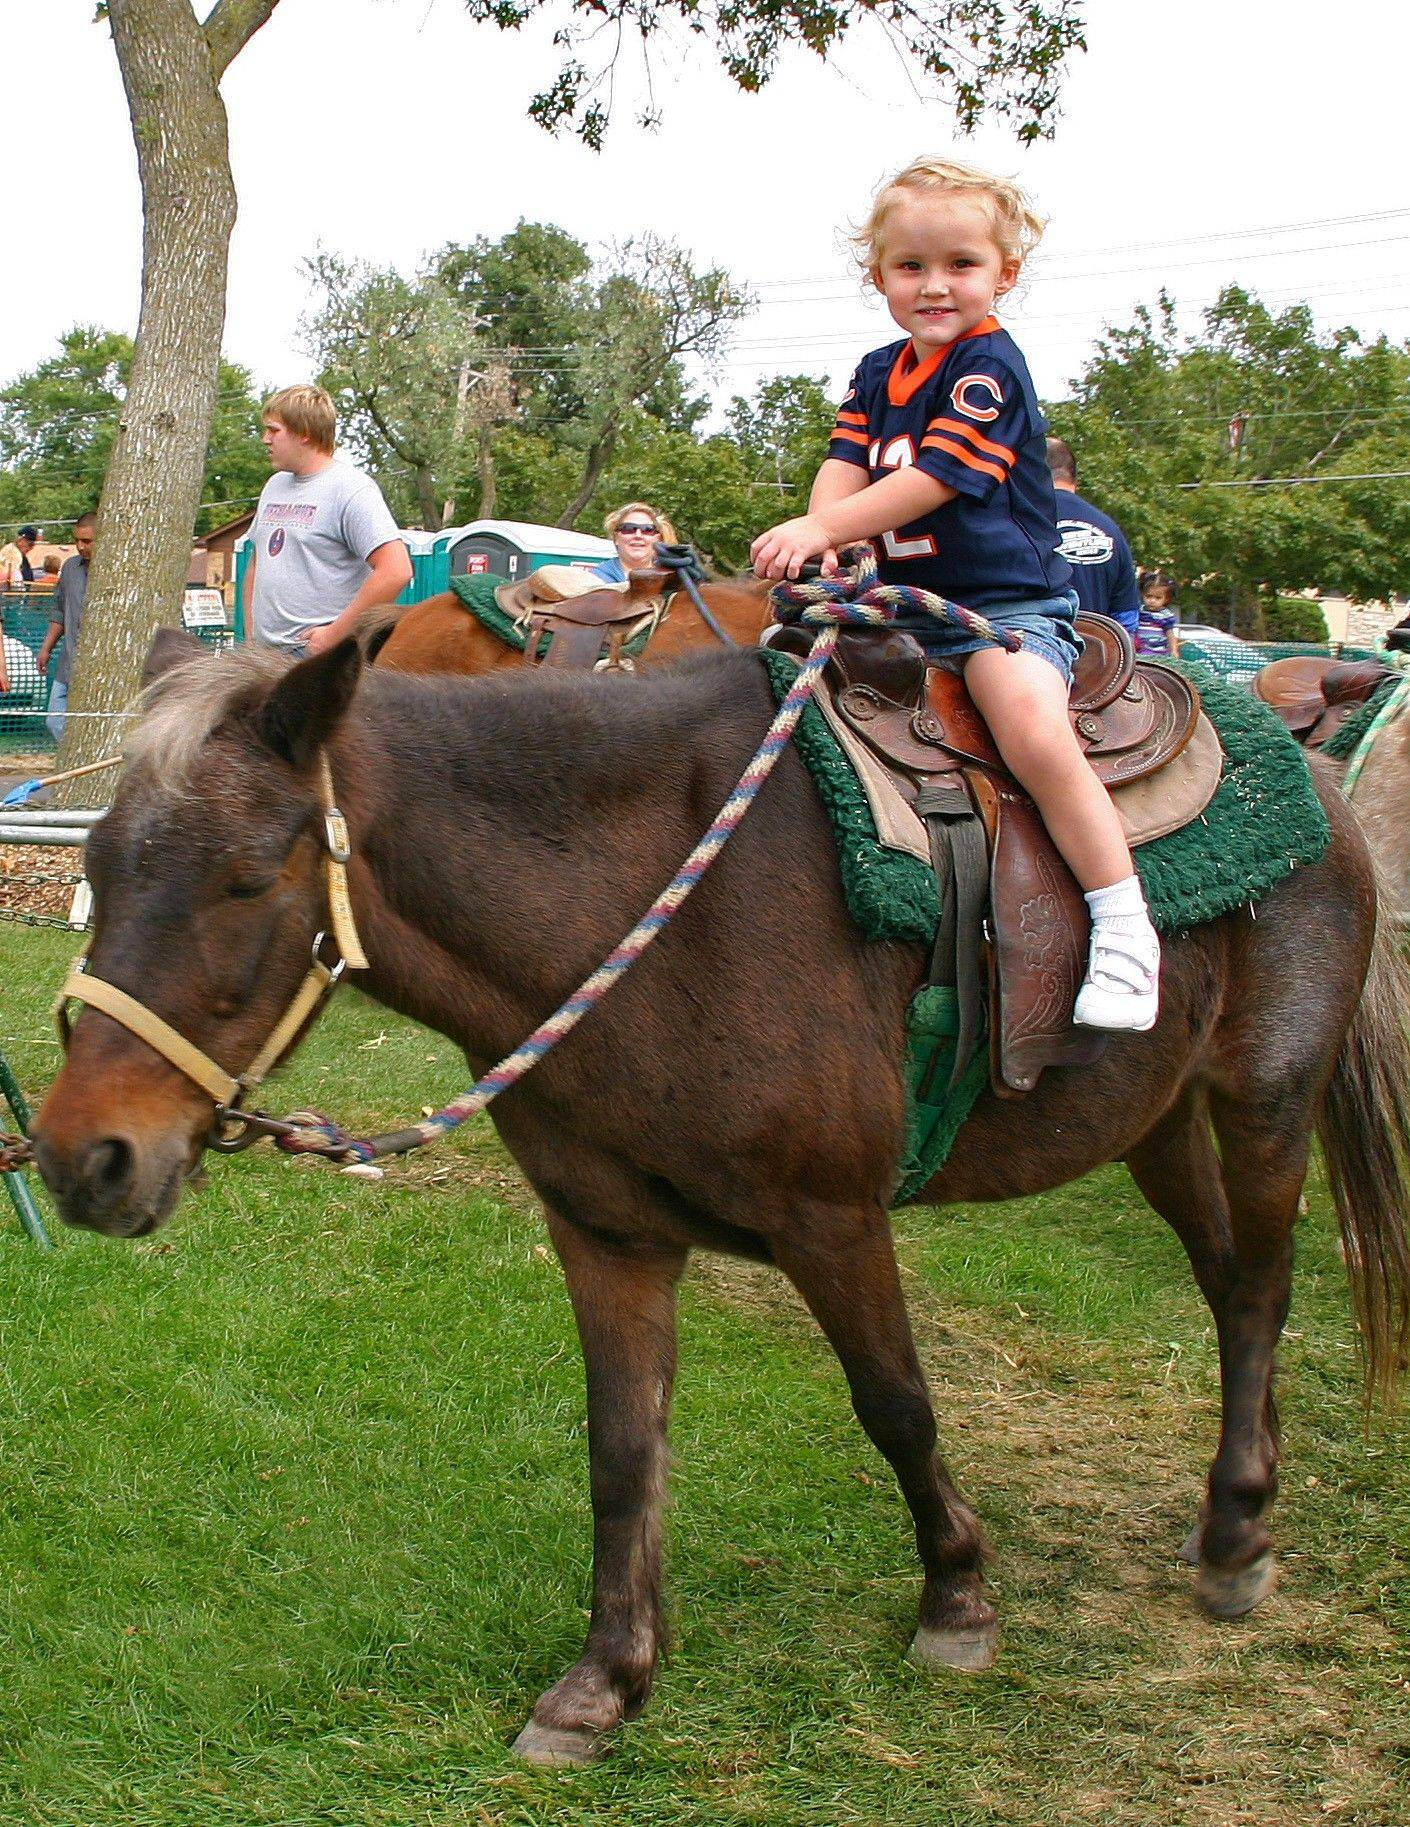 Kidzone! has arts and crafts and face painting, as well as pony rides, entertainment and a hay maze.